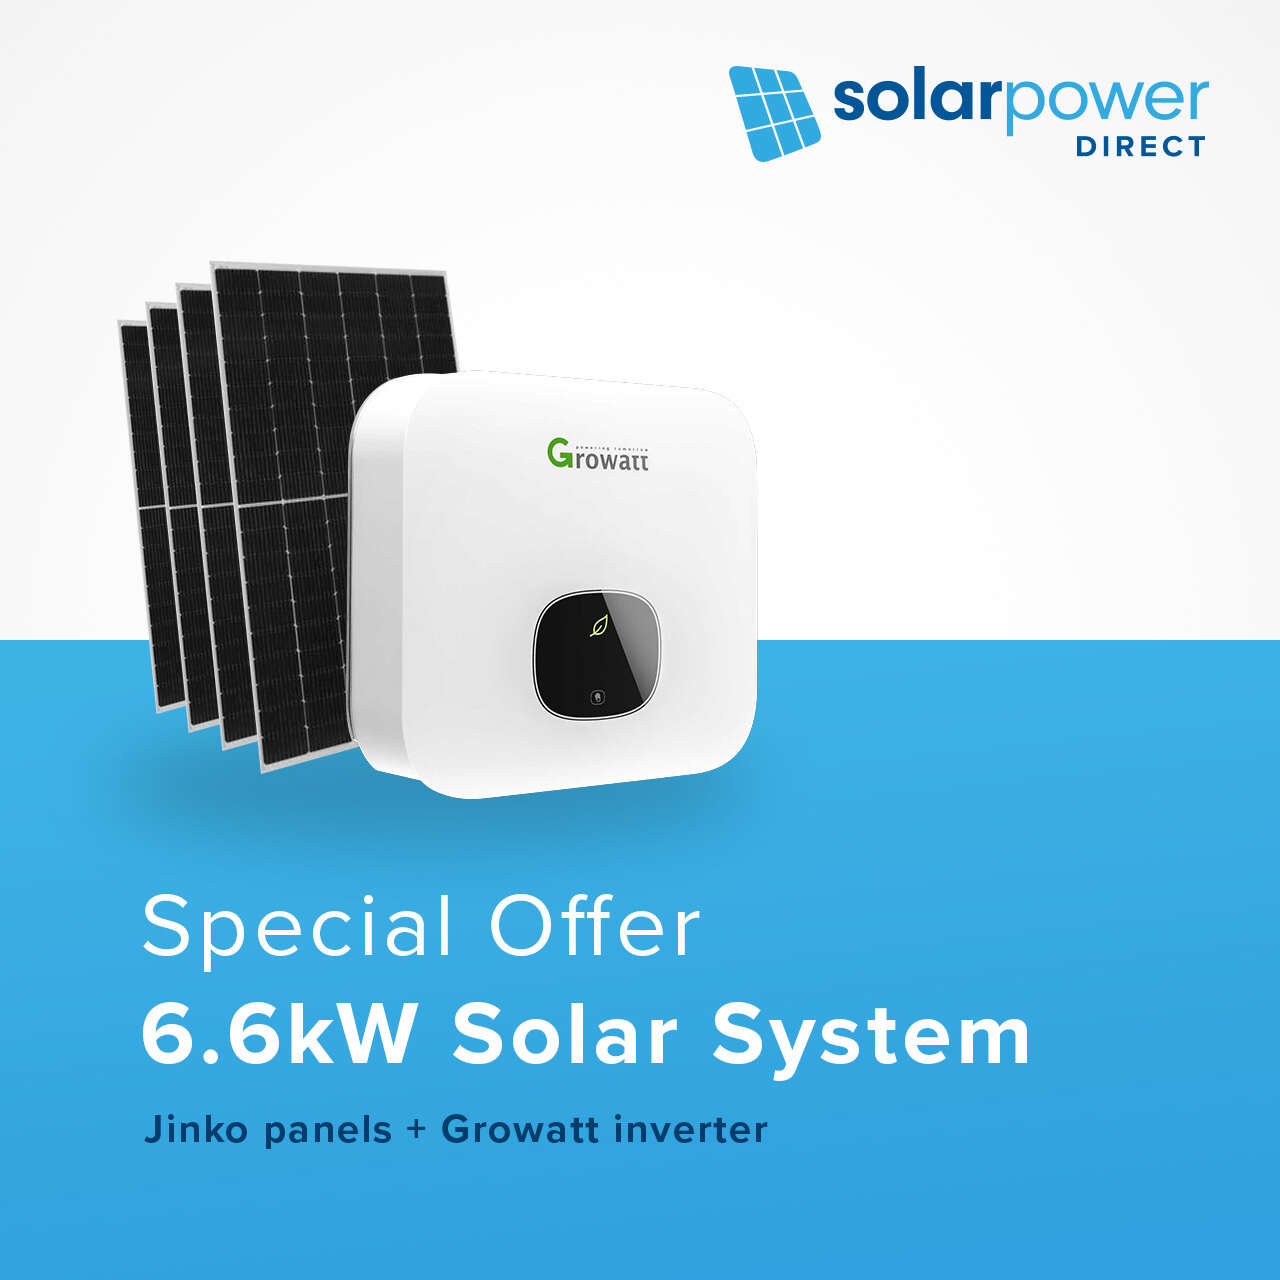 6.6kW Solar System for $3990